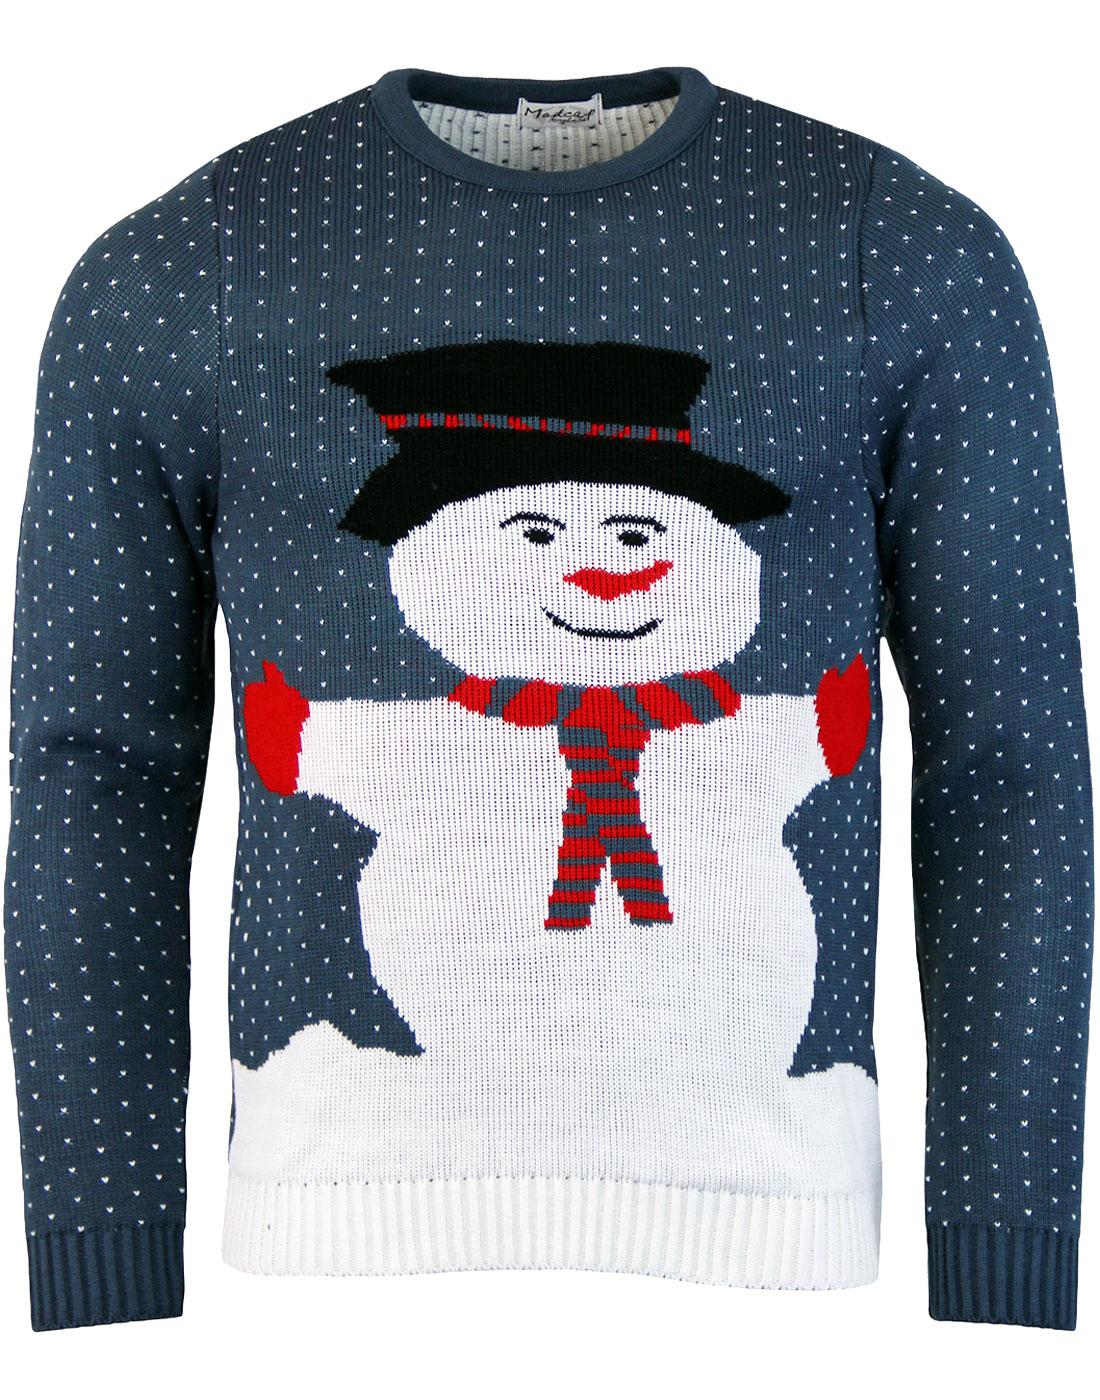 Mr Snowy - Retro 70s Snowman Christmas Jumper